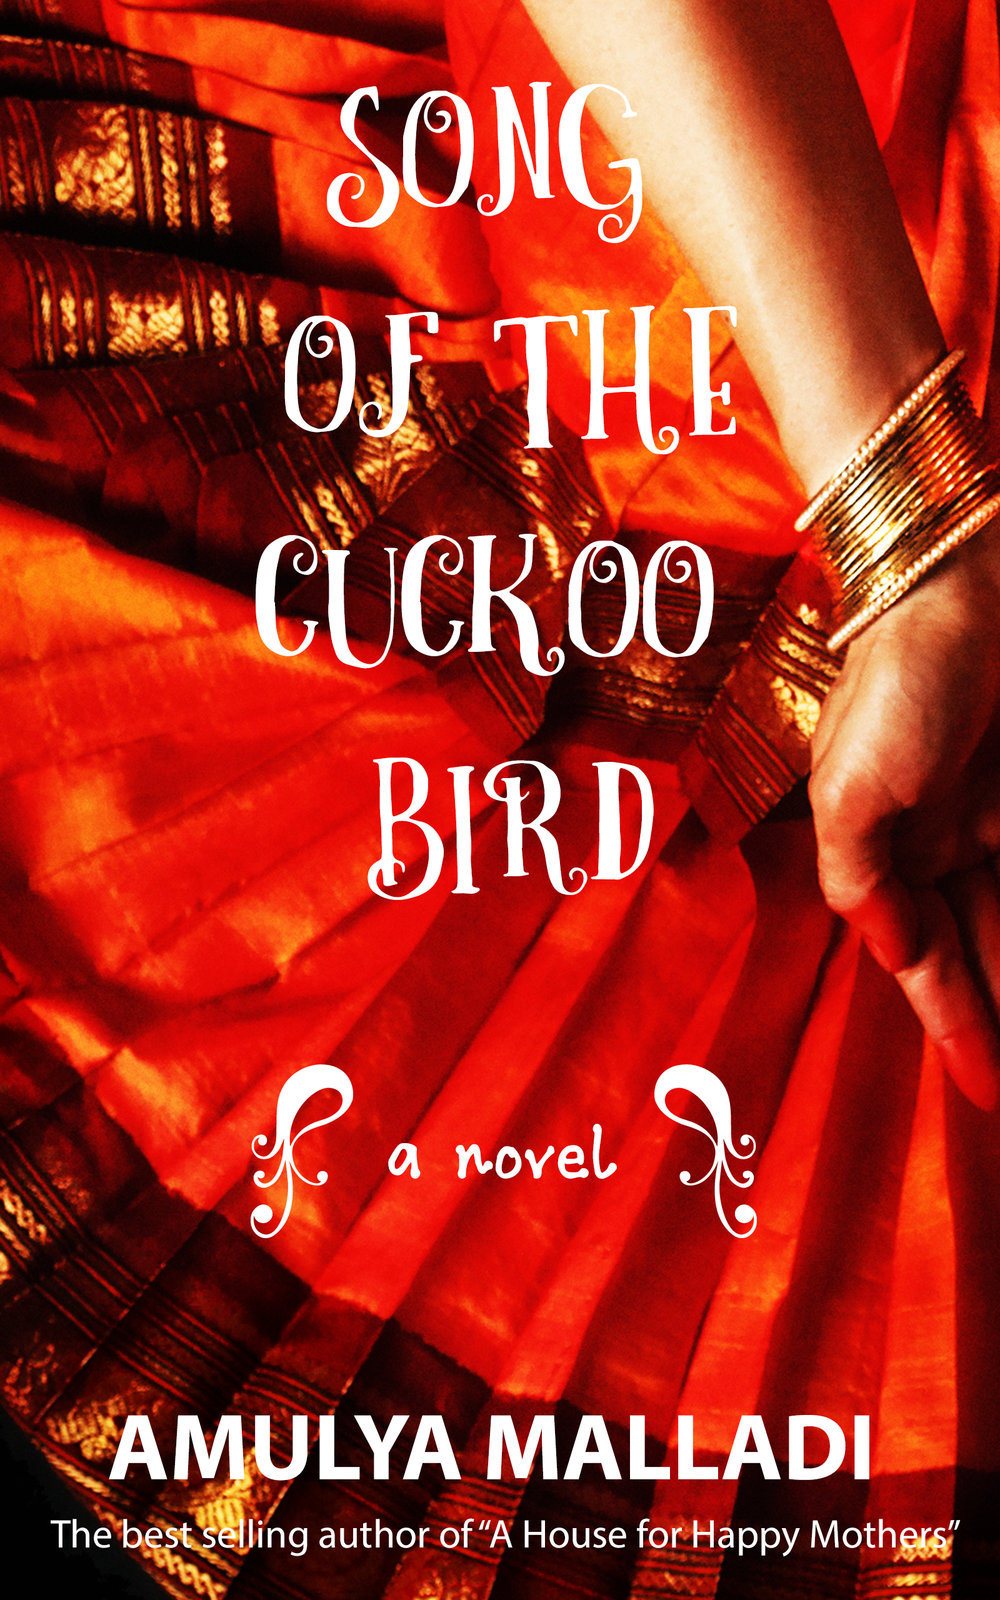 Song of the Cuckoo Bird